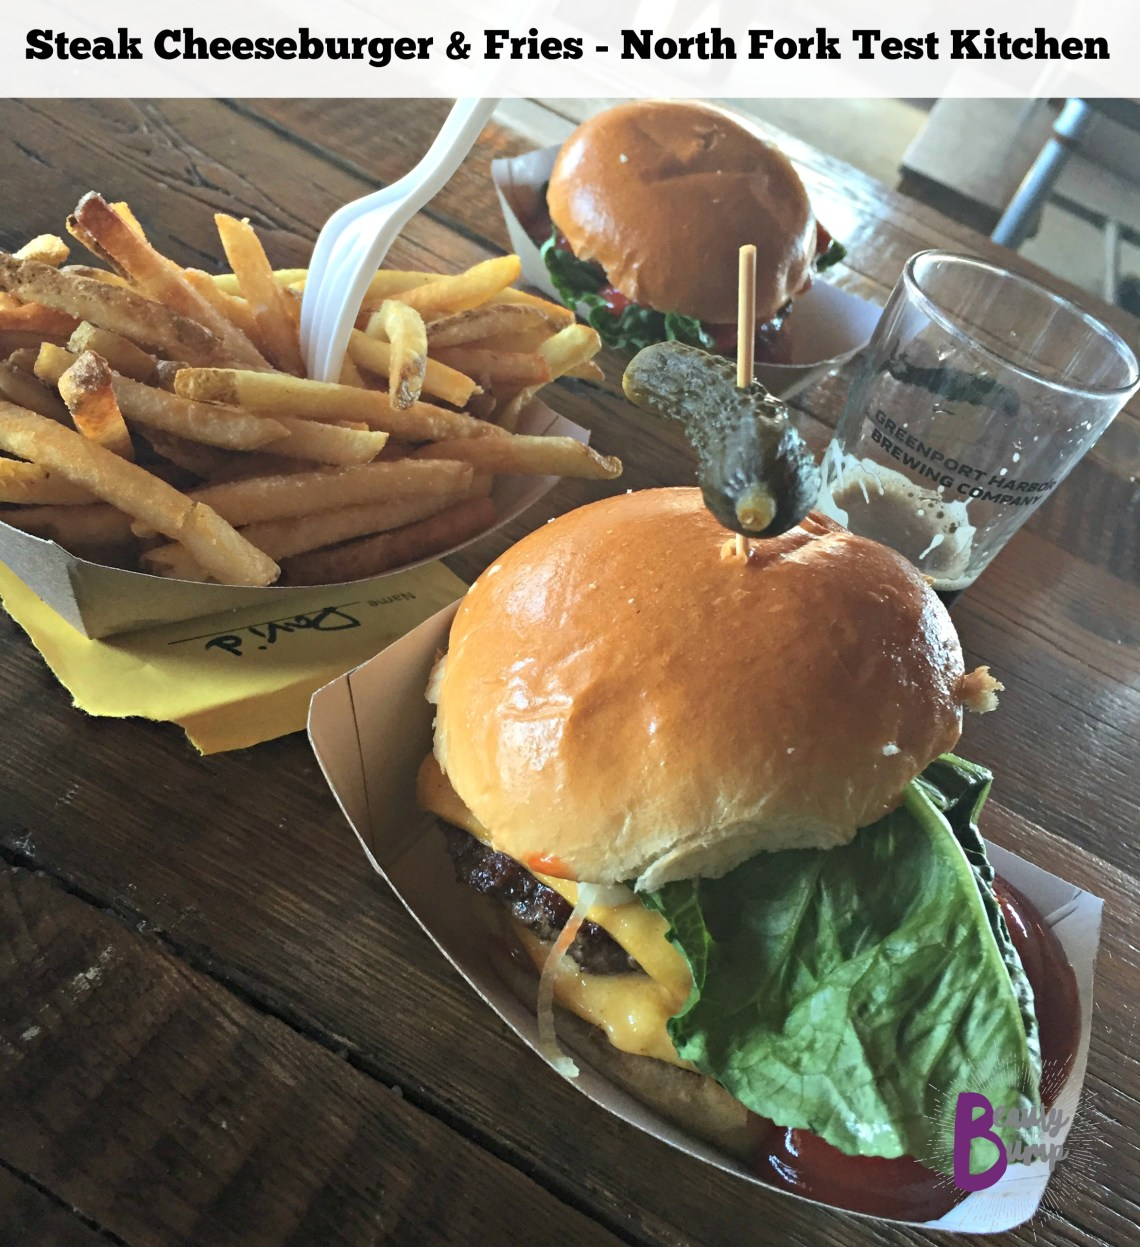 Steak Cheeseburger and Fries North Fork Test Kitchen